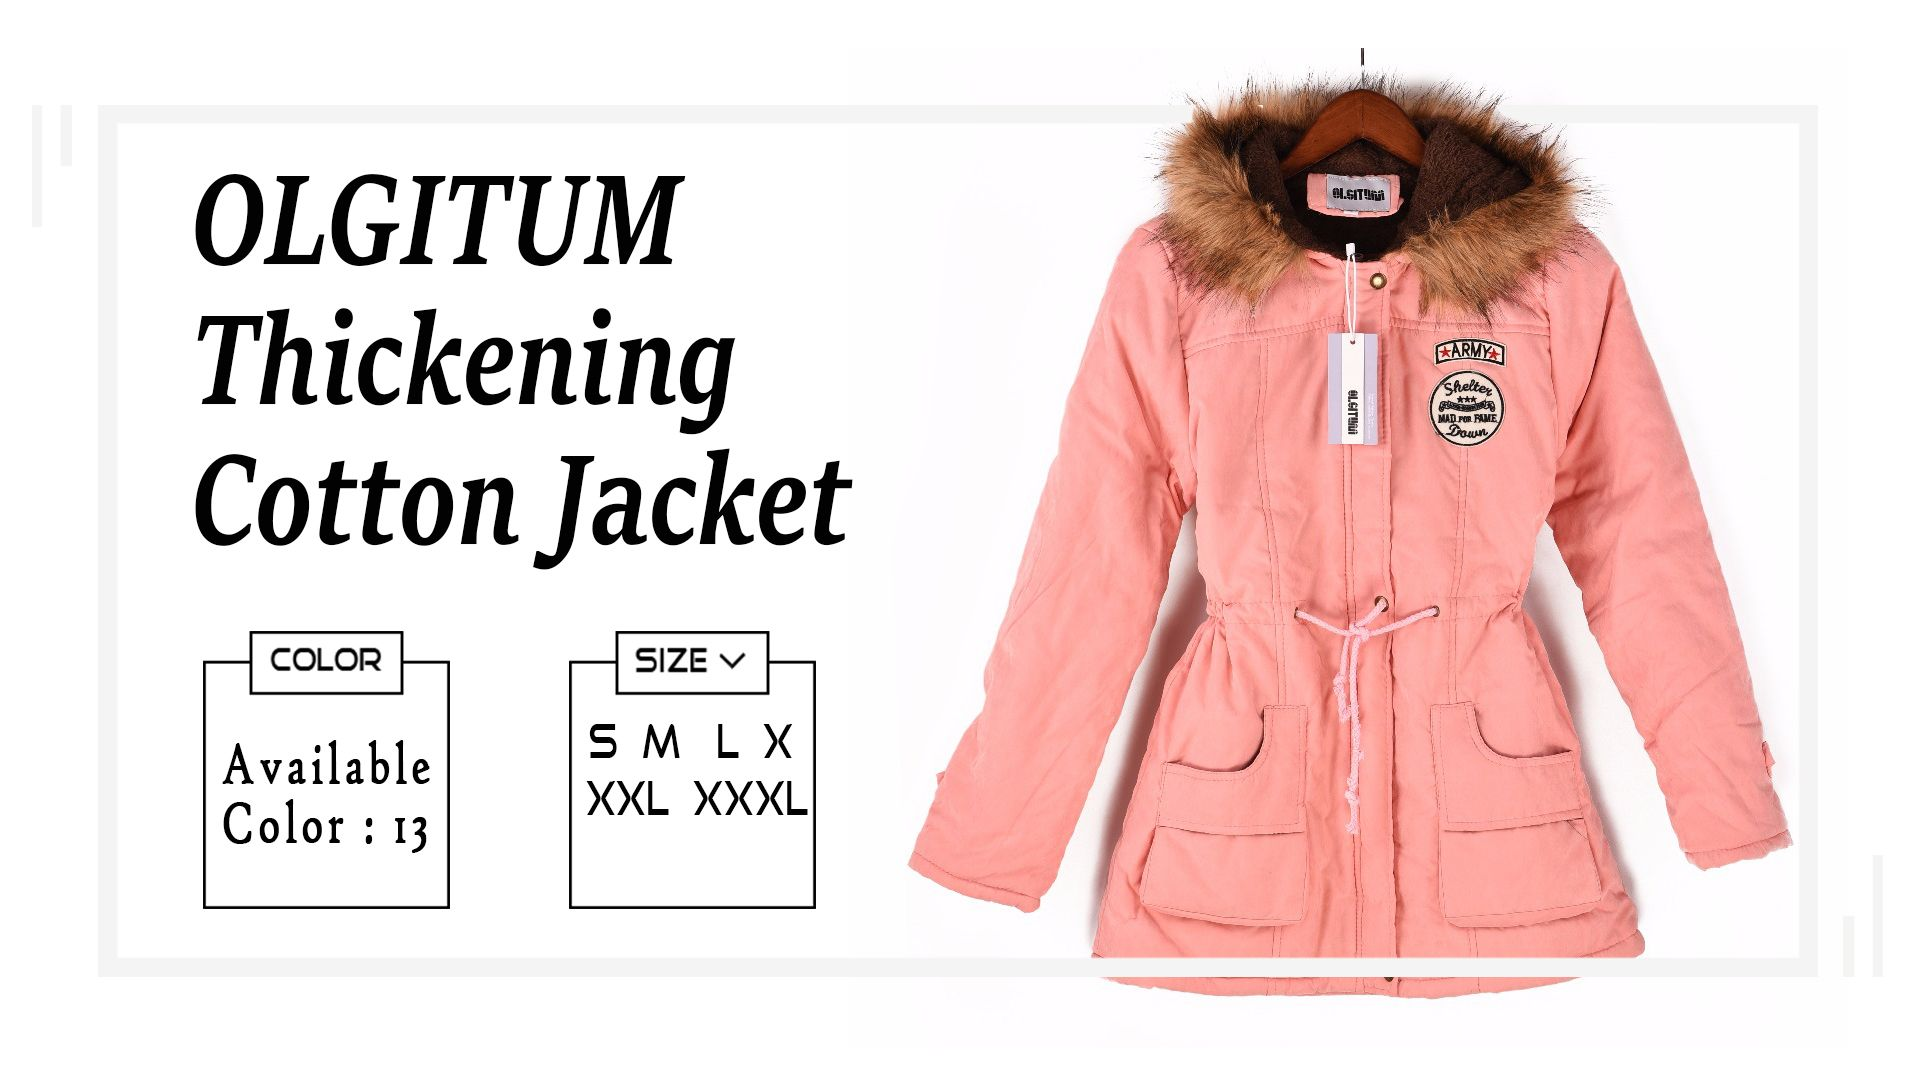 10 Best WinterCloth images | Jackets, Winter jackets, Parka